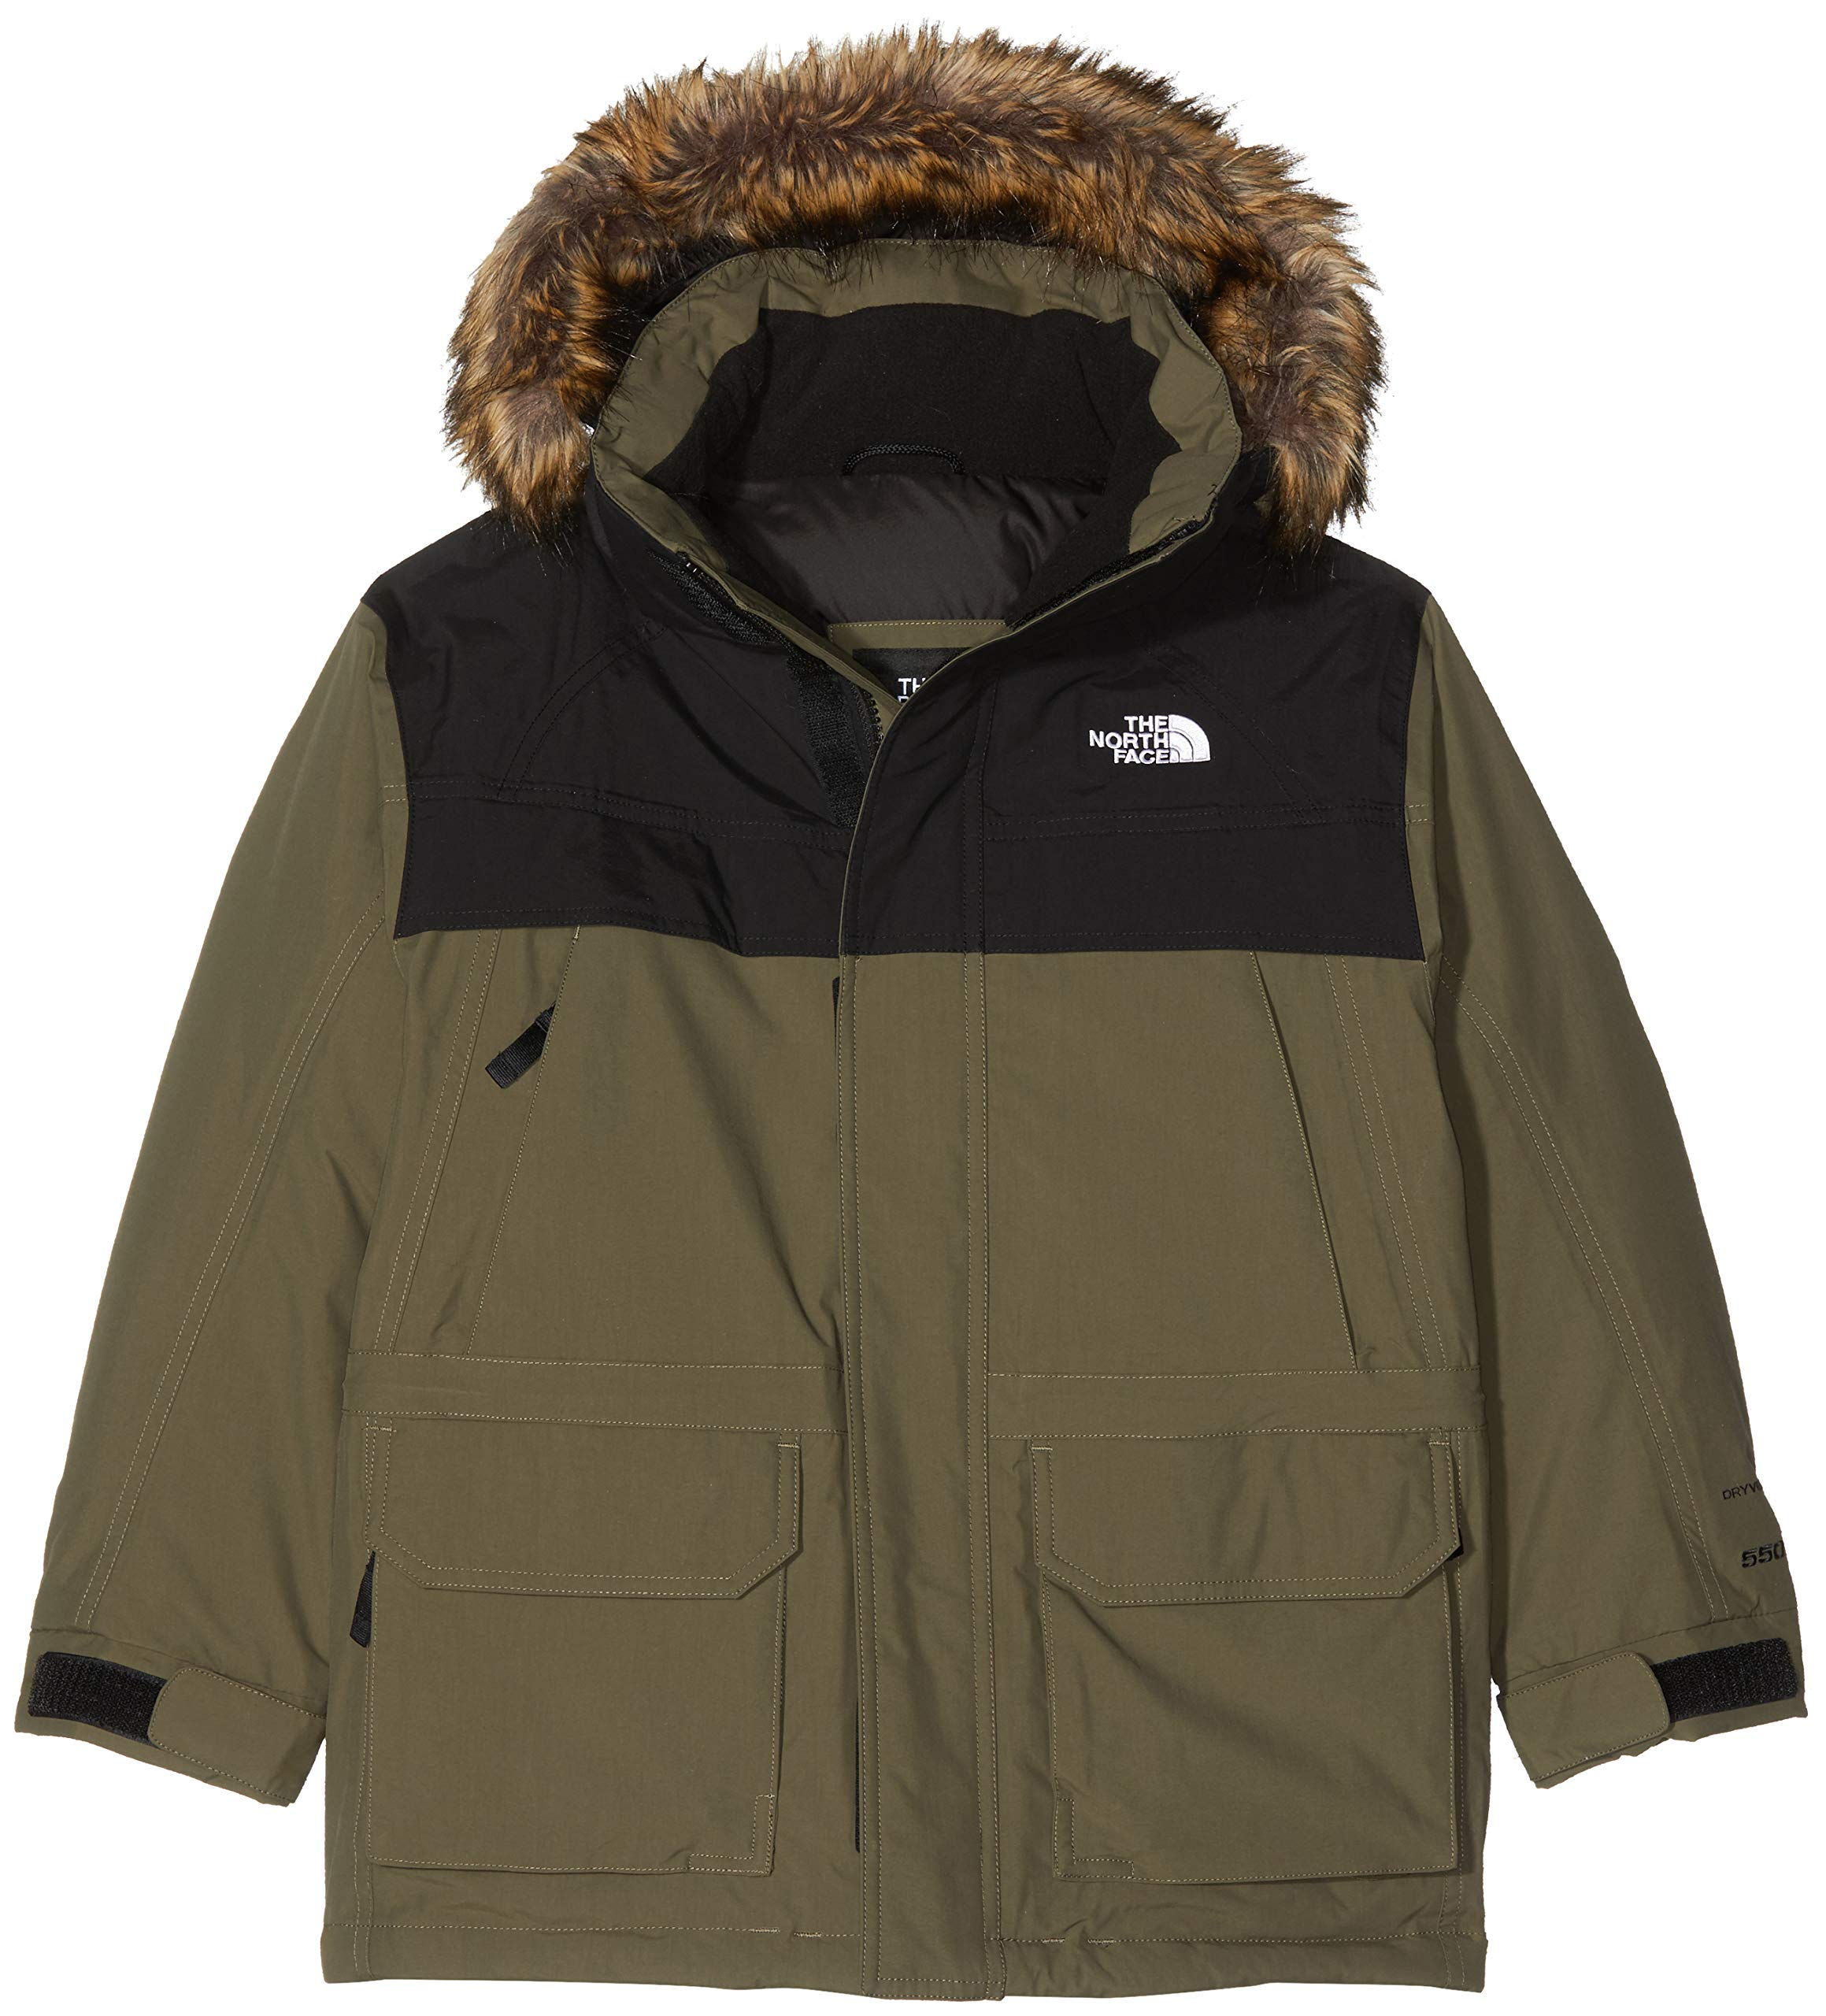 The North Face TNF - Chaquetas, Niños, Verde (New Taupe Green), M